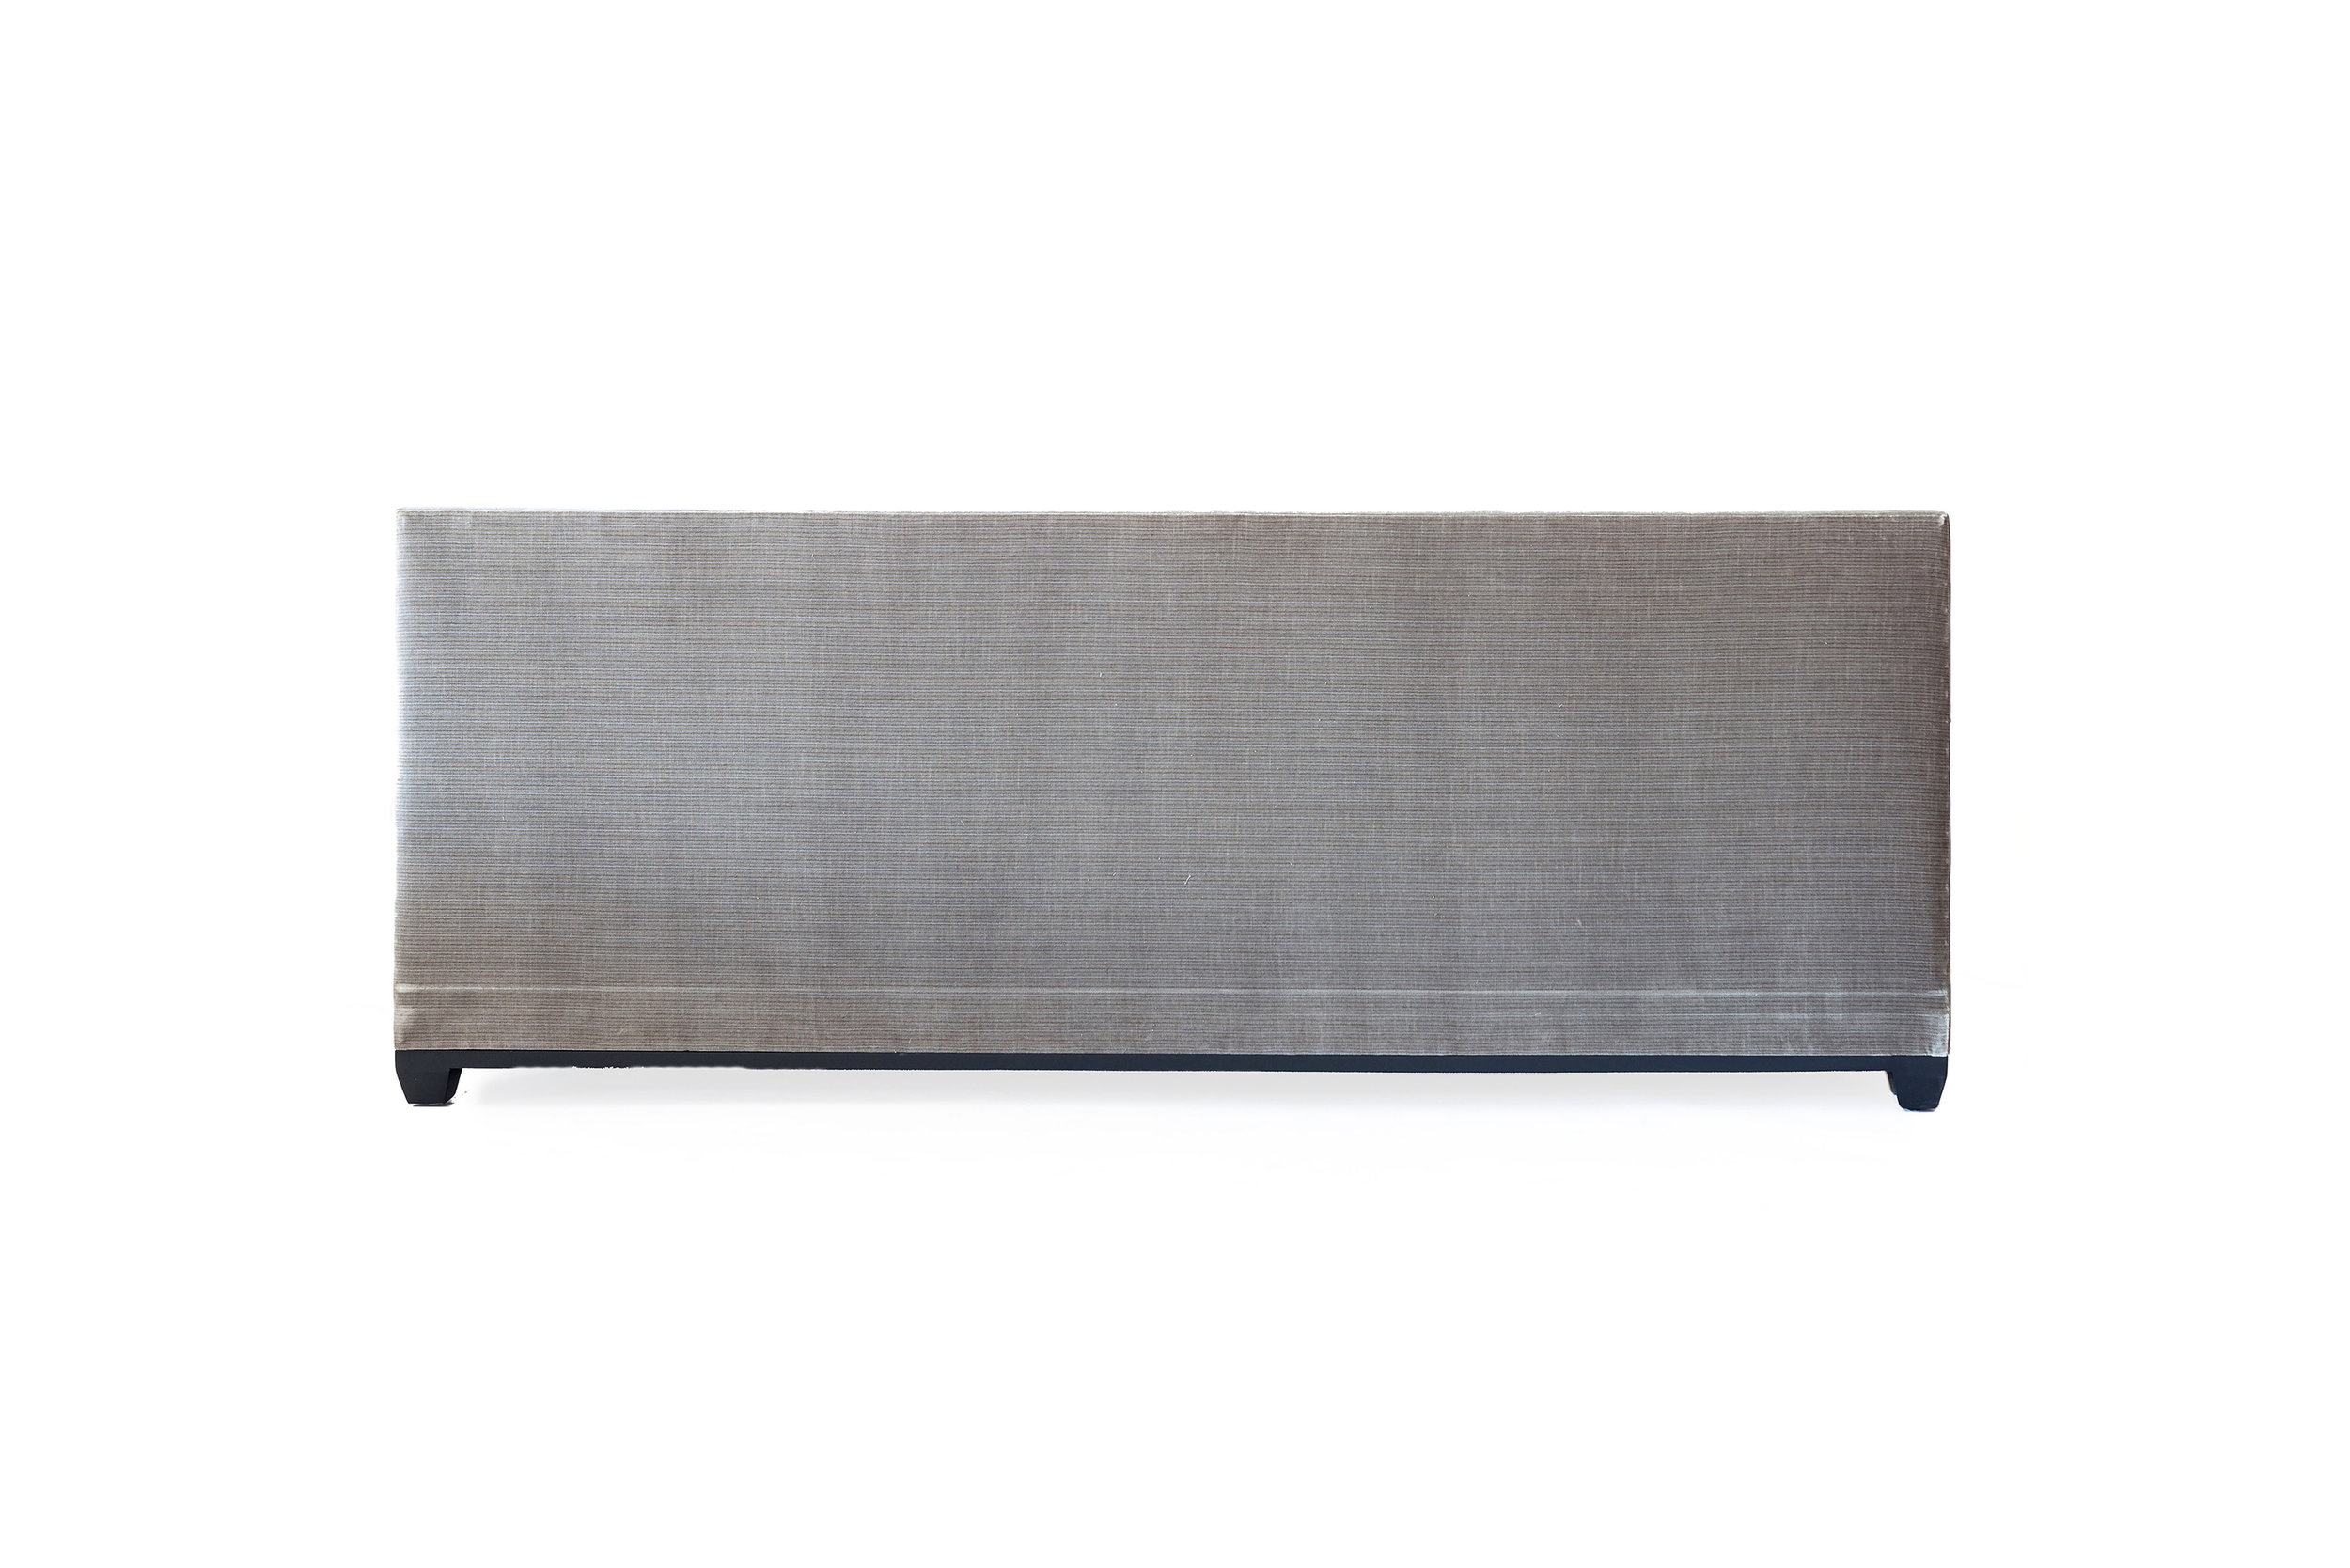 CHRISTIAN SOFA BACK.jpg